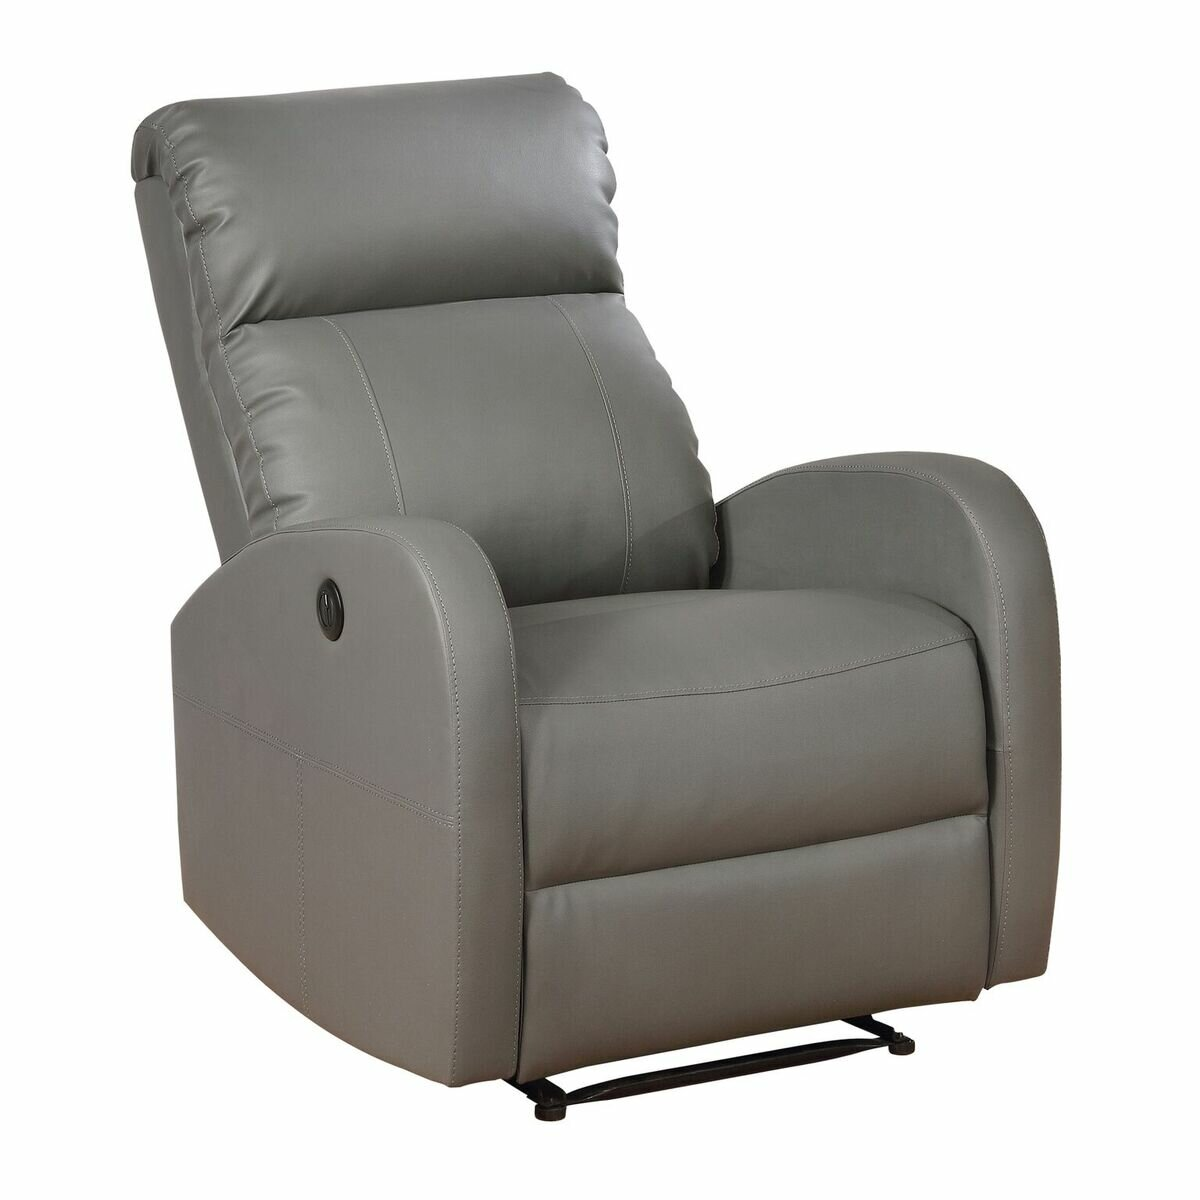 s leather recliner products glider ii furniture weir sutton